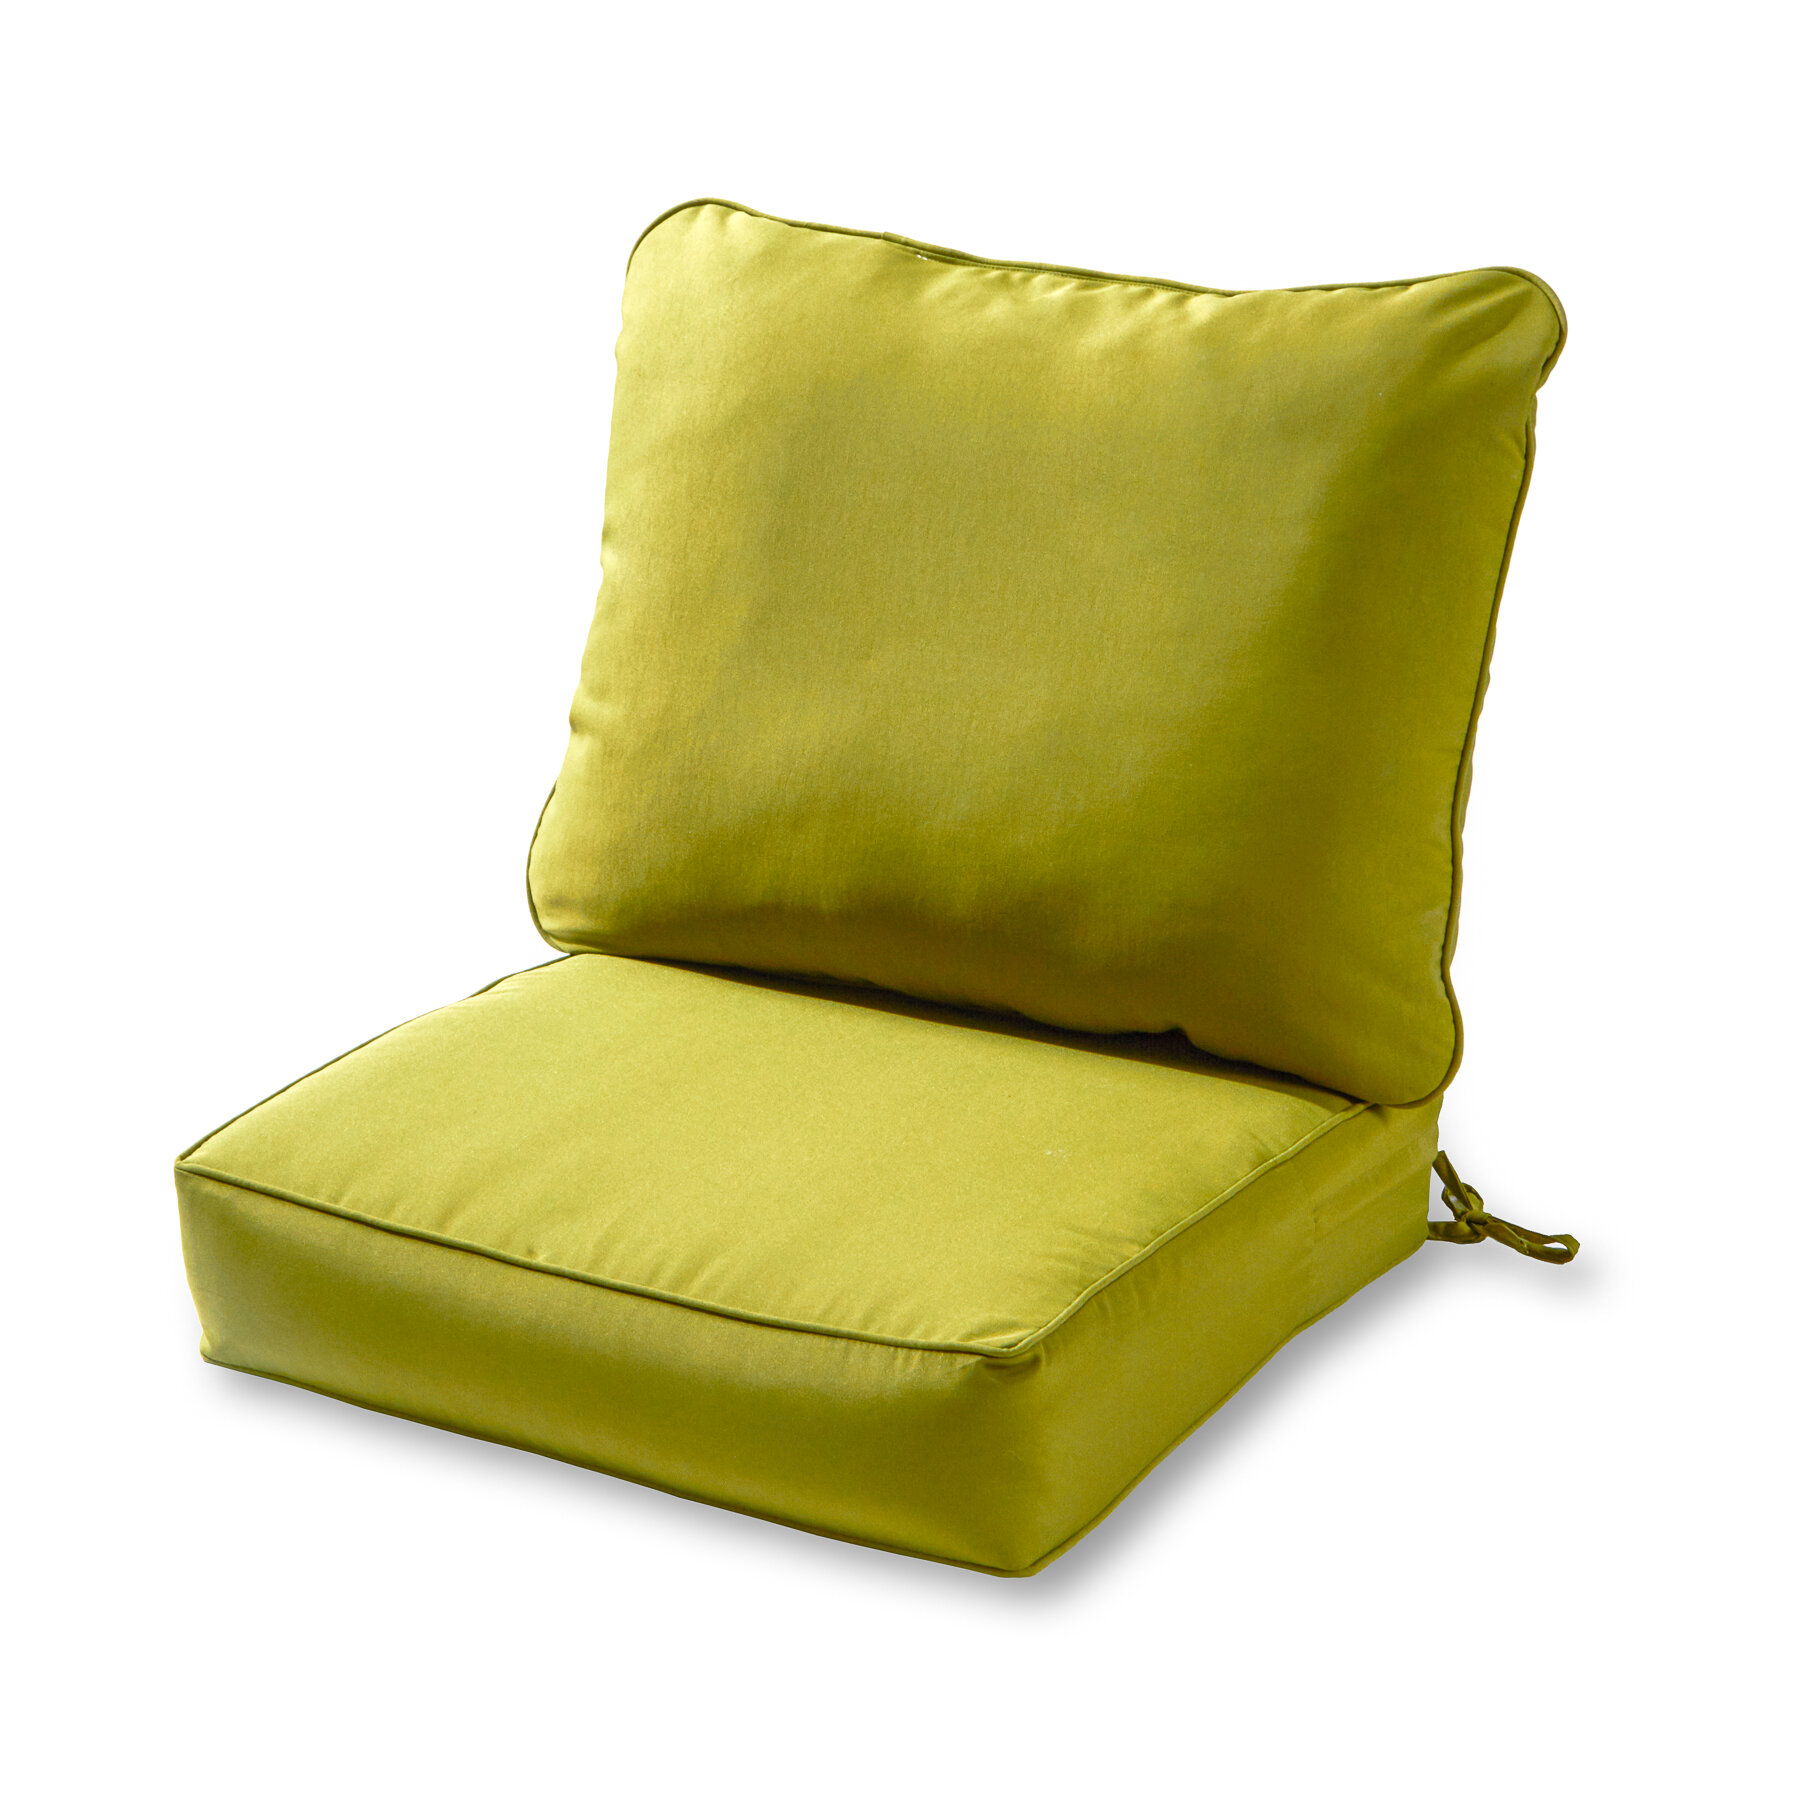 Admirable Sarver Indoor Outdoor Lounge Chair Cushion Unemploymentrelief Wooden Chair Designs For Living Room Unemploymentrelieforg